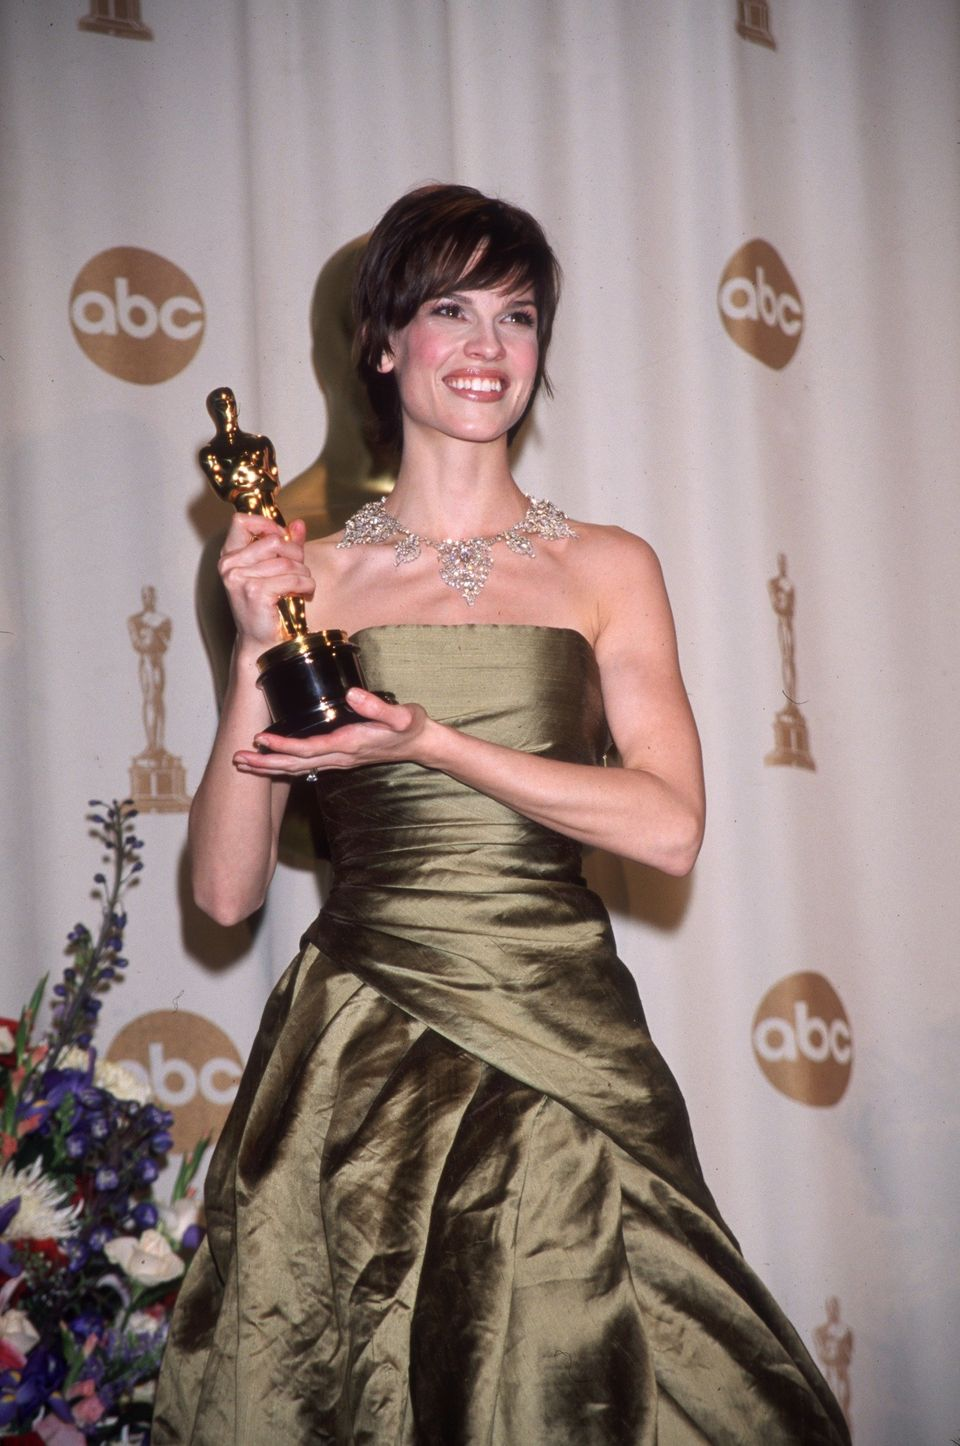 Hilary posing with her Oscar after winning for her role in Boys Don't